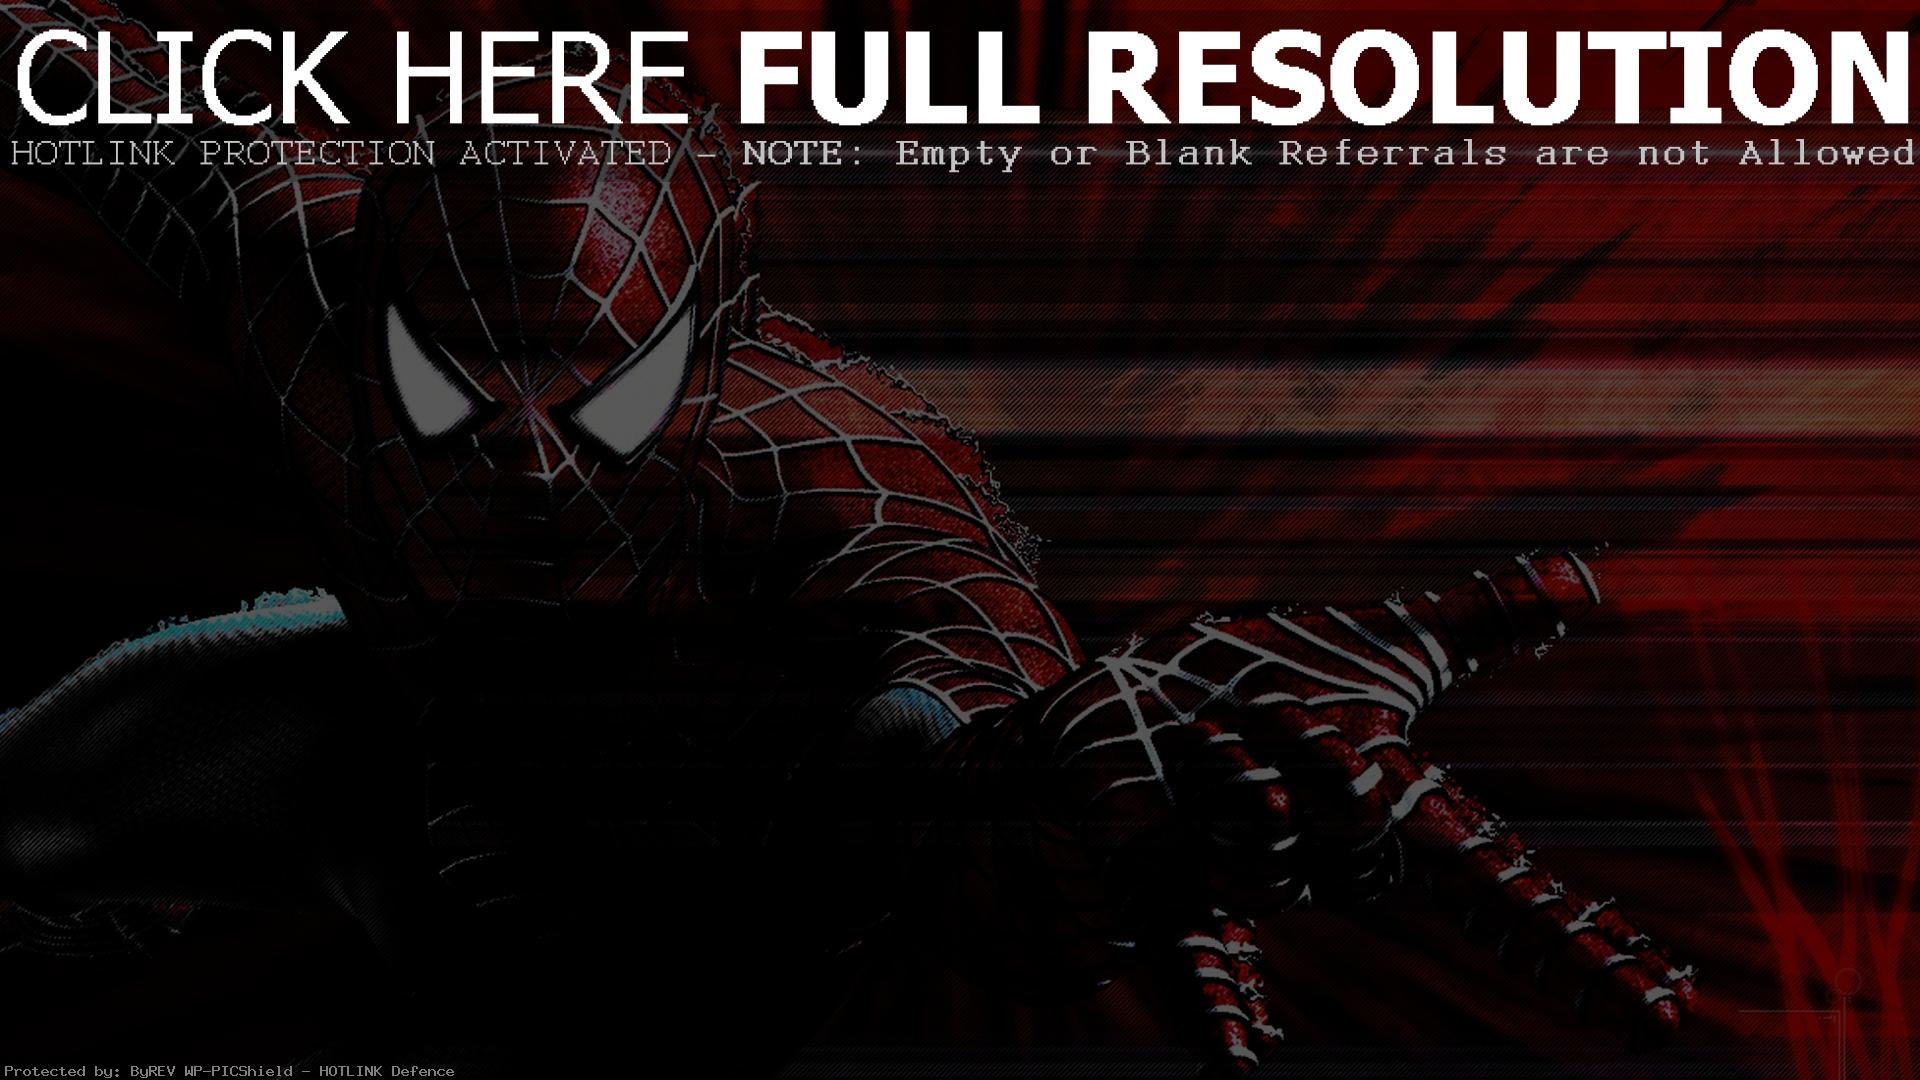 Spider Man Pictures and Photos Getty Images Pictures of spiderman wallpapers